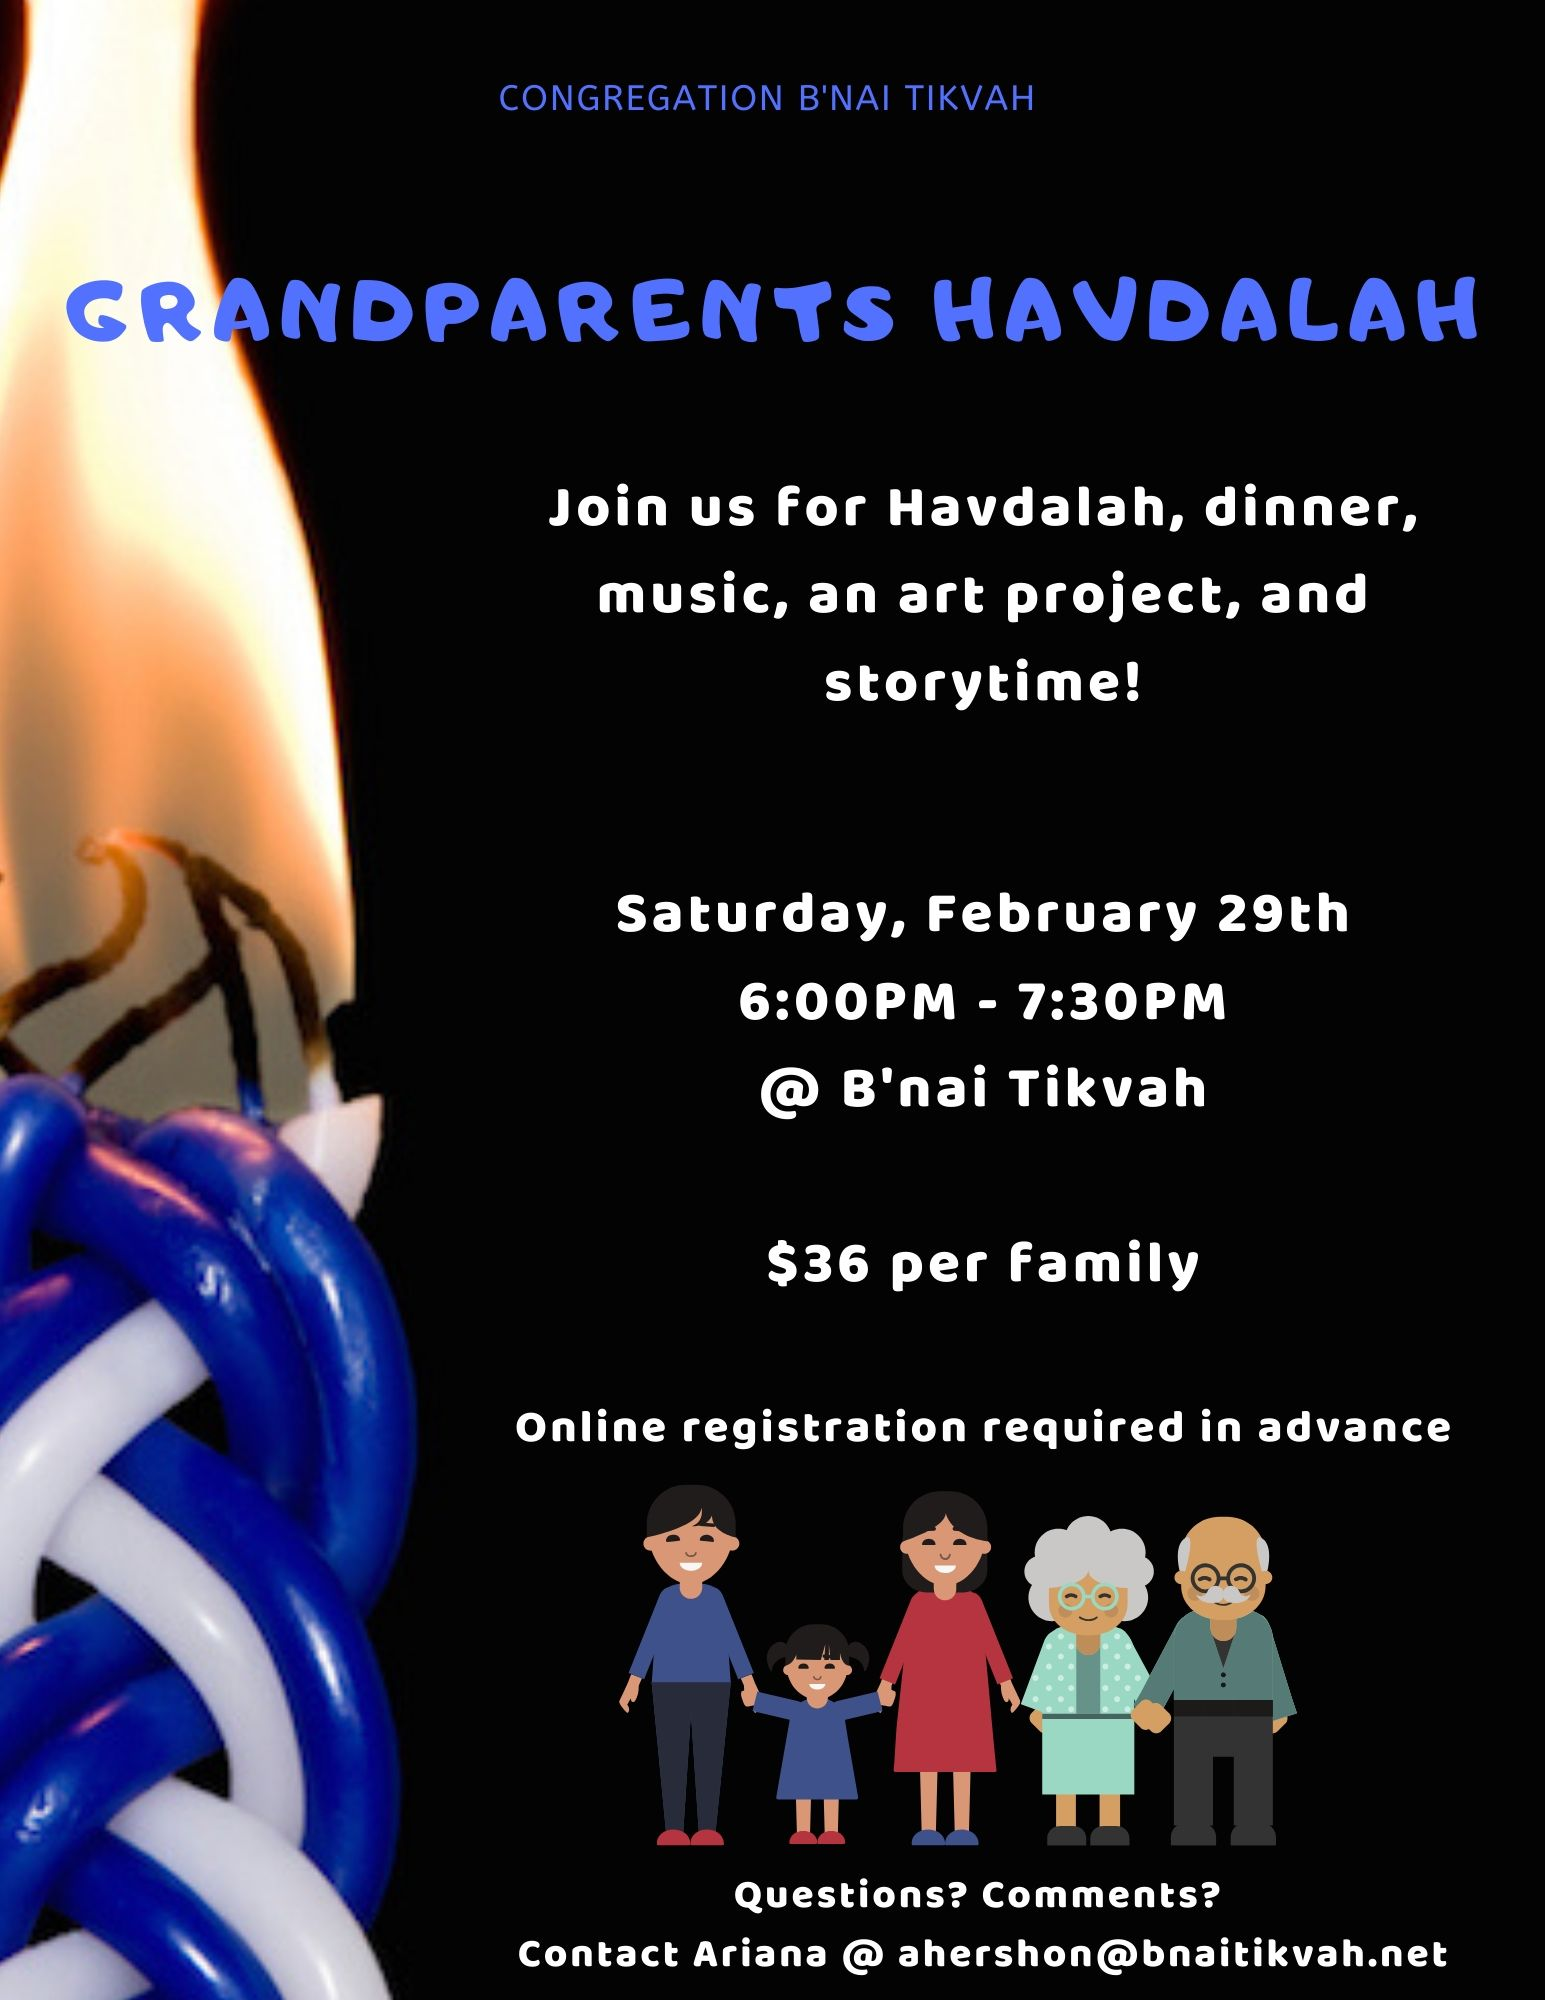 Grandparents Havdalah